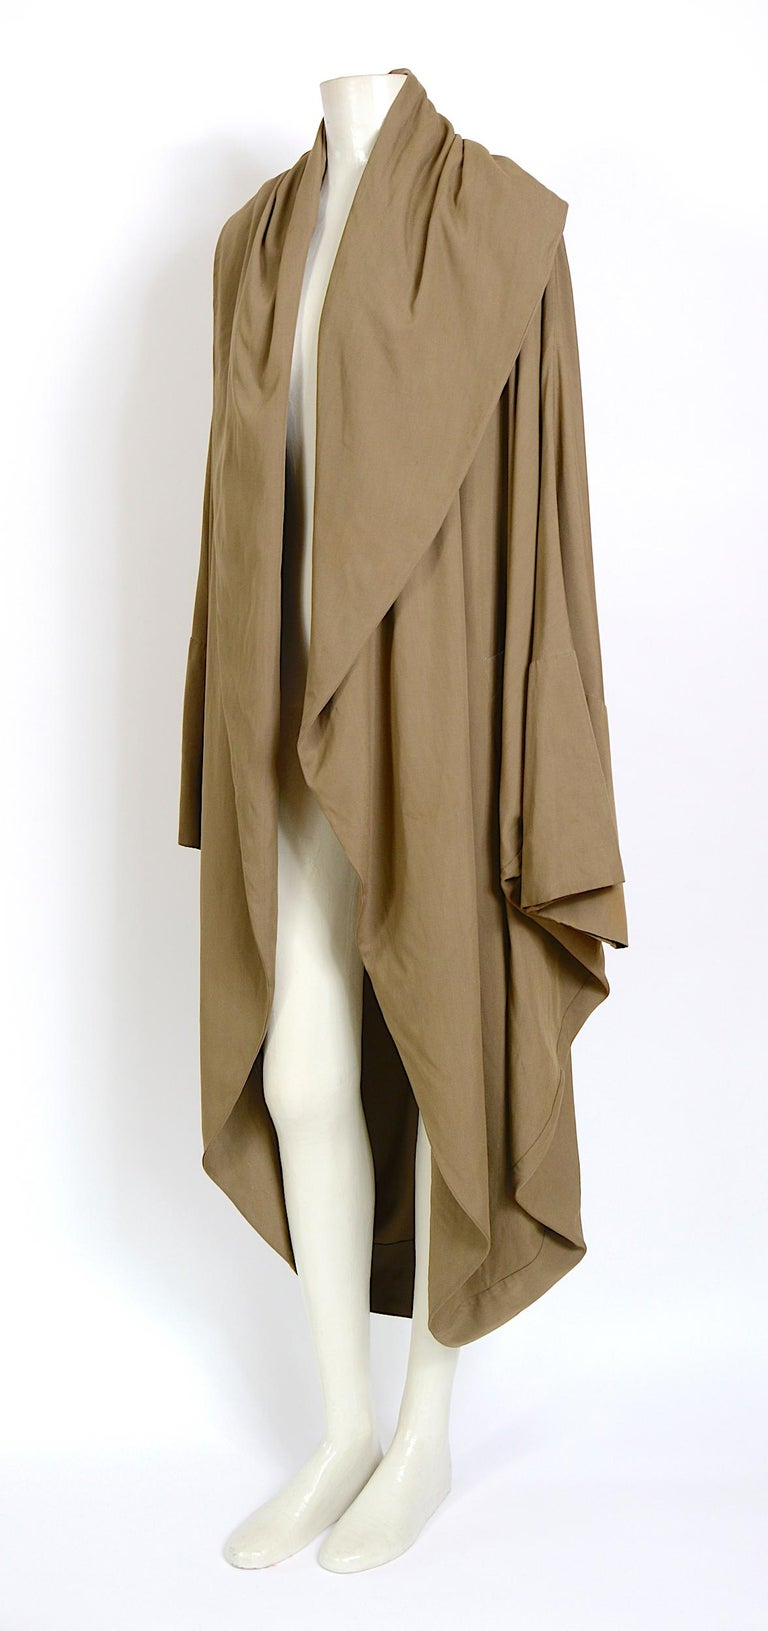 Brown Romeo Gigli vintage 1990s collectors cocoon coat For Sale